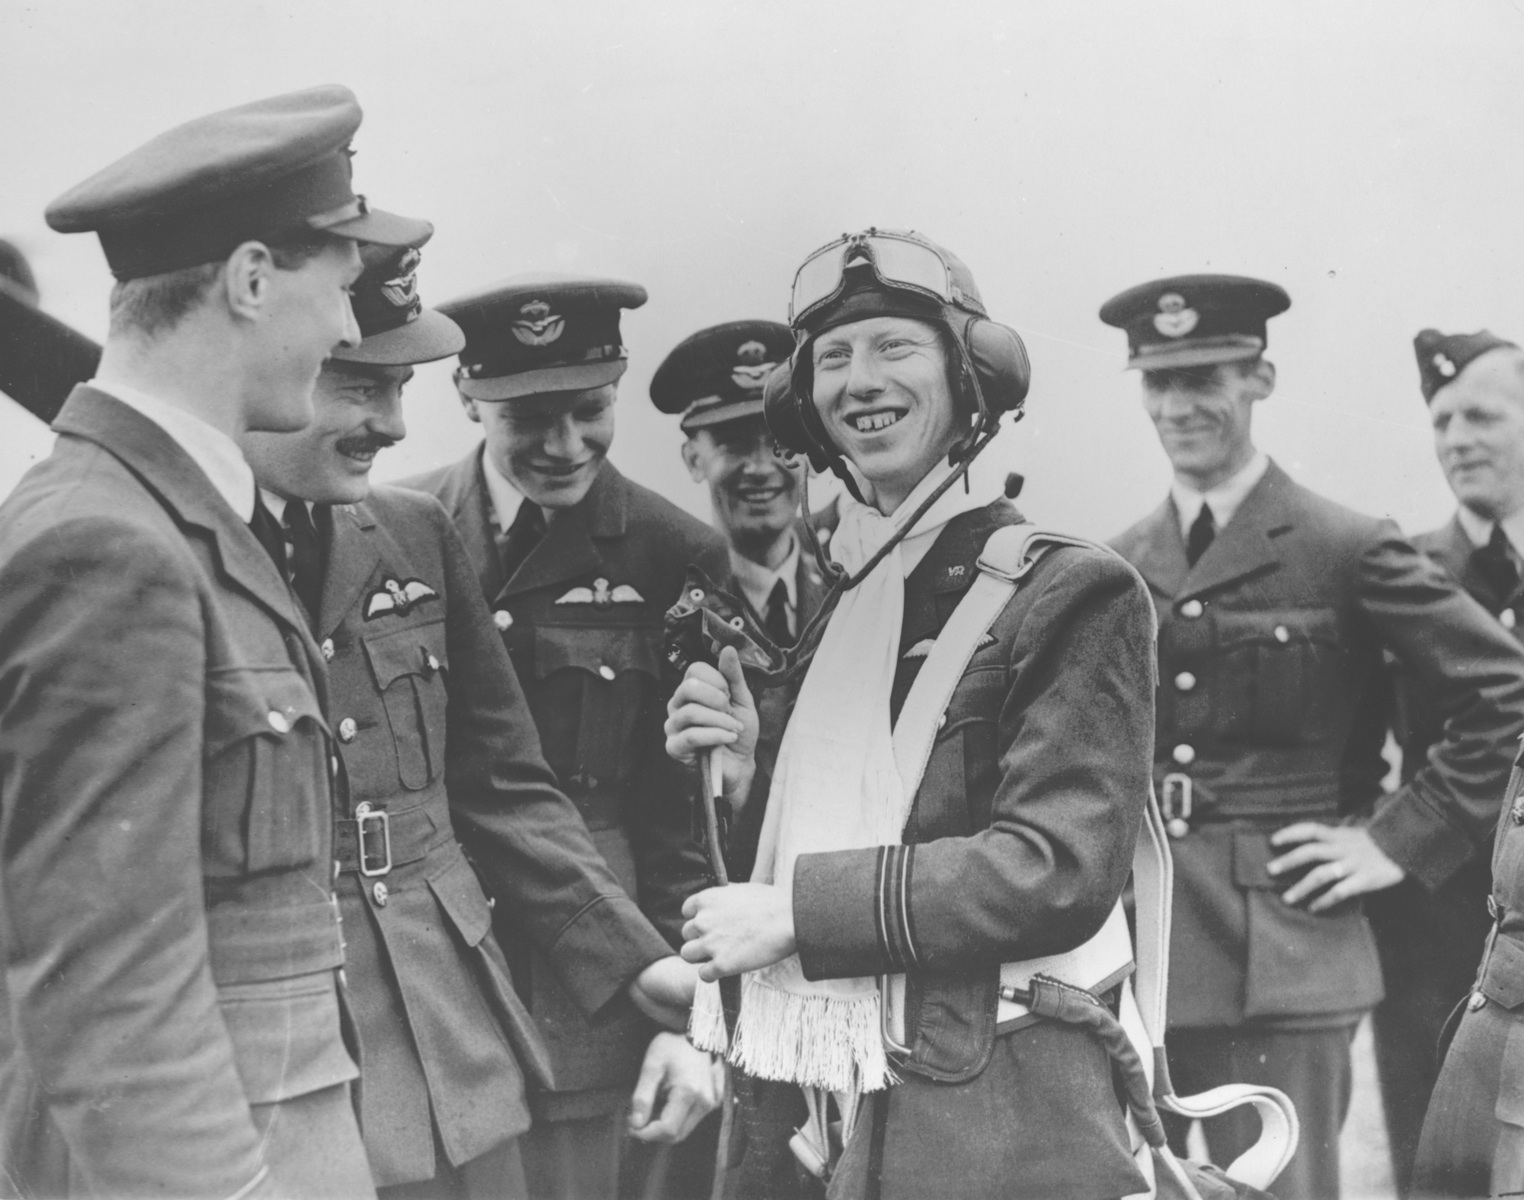 Aircrew RAF ace James Ginger Lacy accepts congratulations from teammates 01